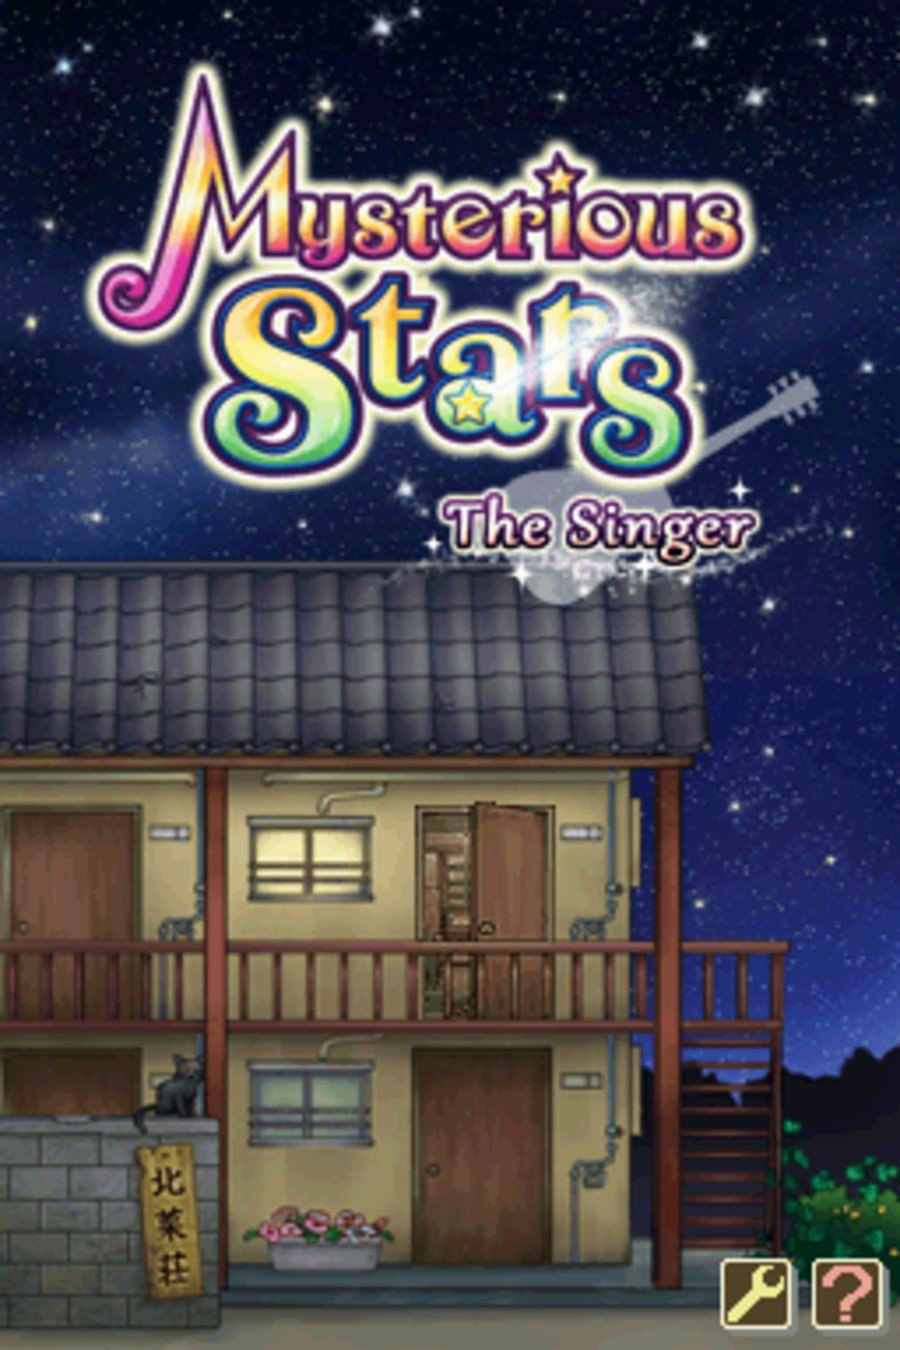 Mysterious Stars: The Singer Screenshot